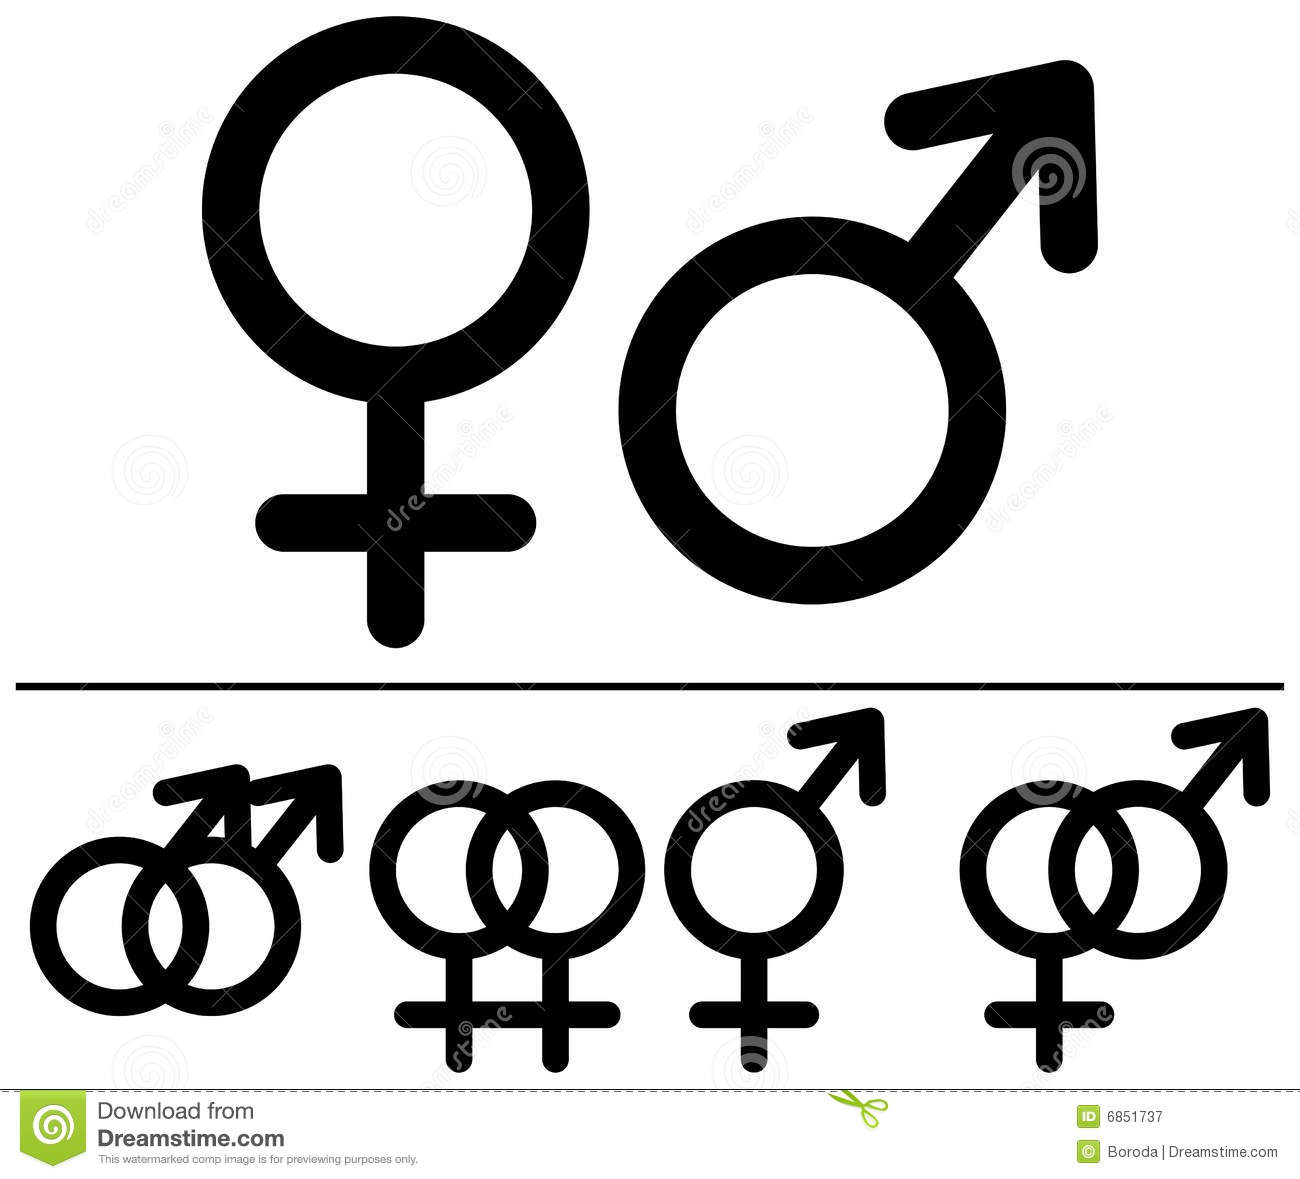 from Khalil gay symbol two woman